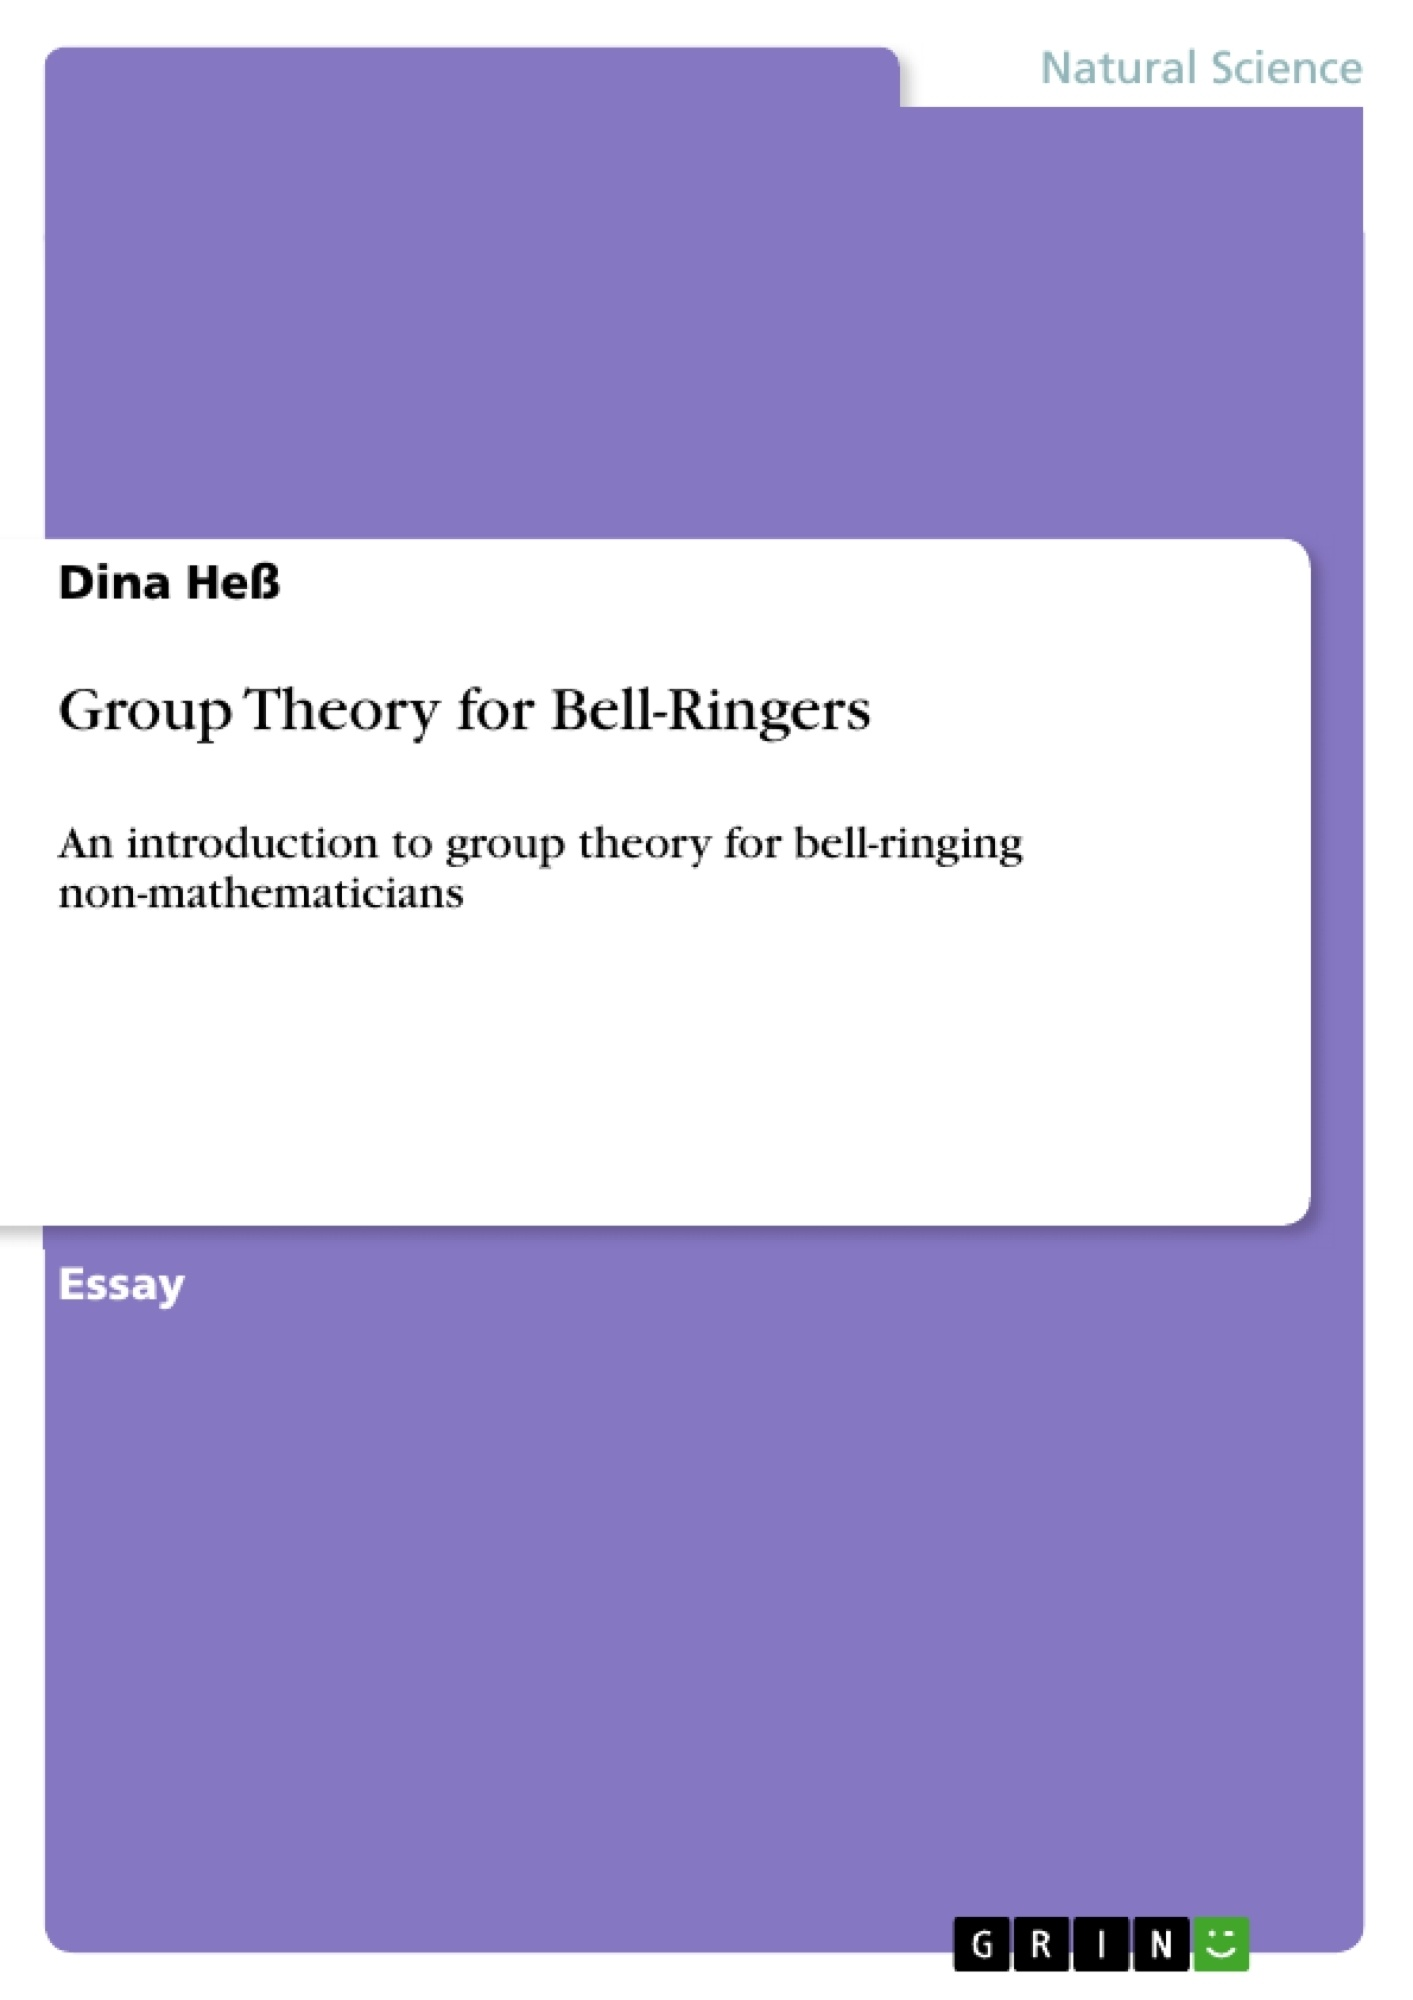 group theory for bell ringers publish your master s thesis group theory for bell ringers publish your master s thesis bachelor s thesis essay or term paper